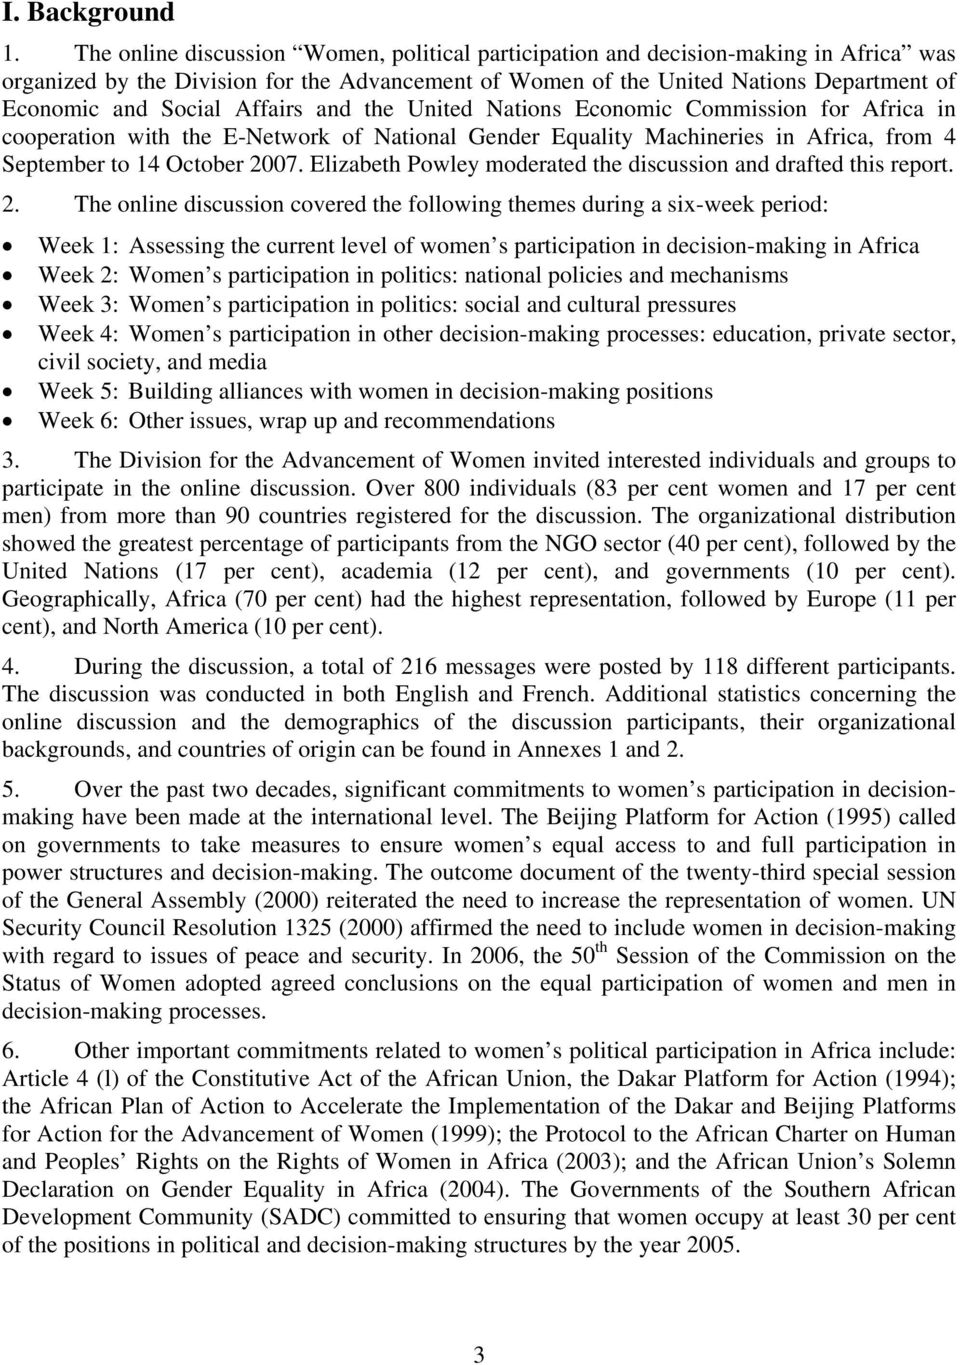 Affairs and the United Nations Economic Commission for Africa in cooperation with the E-Network of National Gender Equality Machineries in Africa, from 4 September to 14 October 2007.